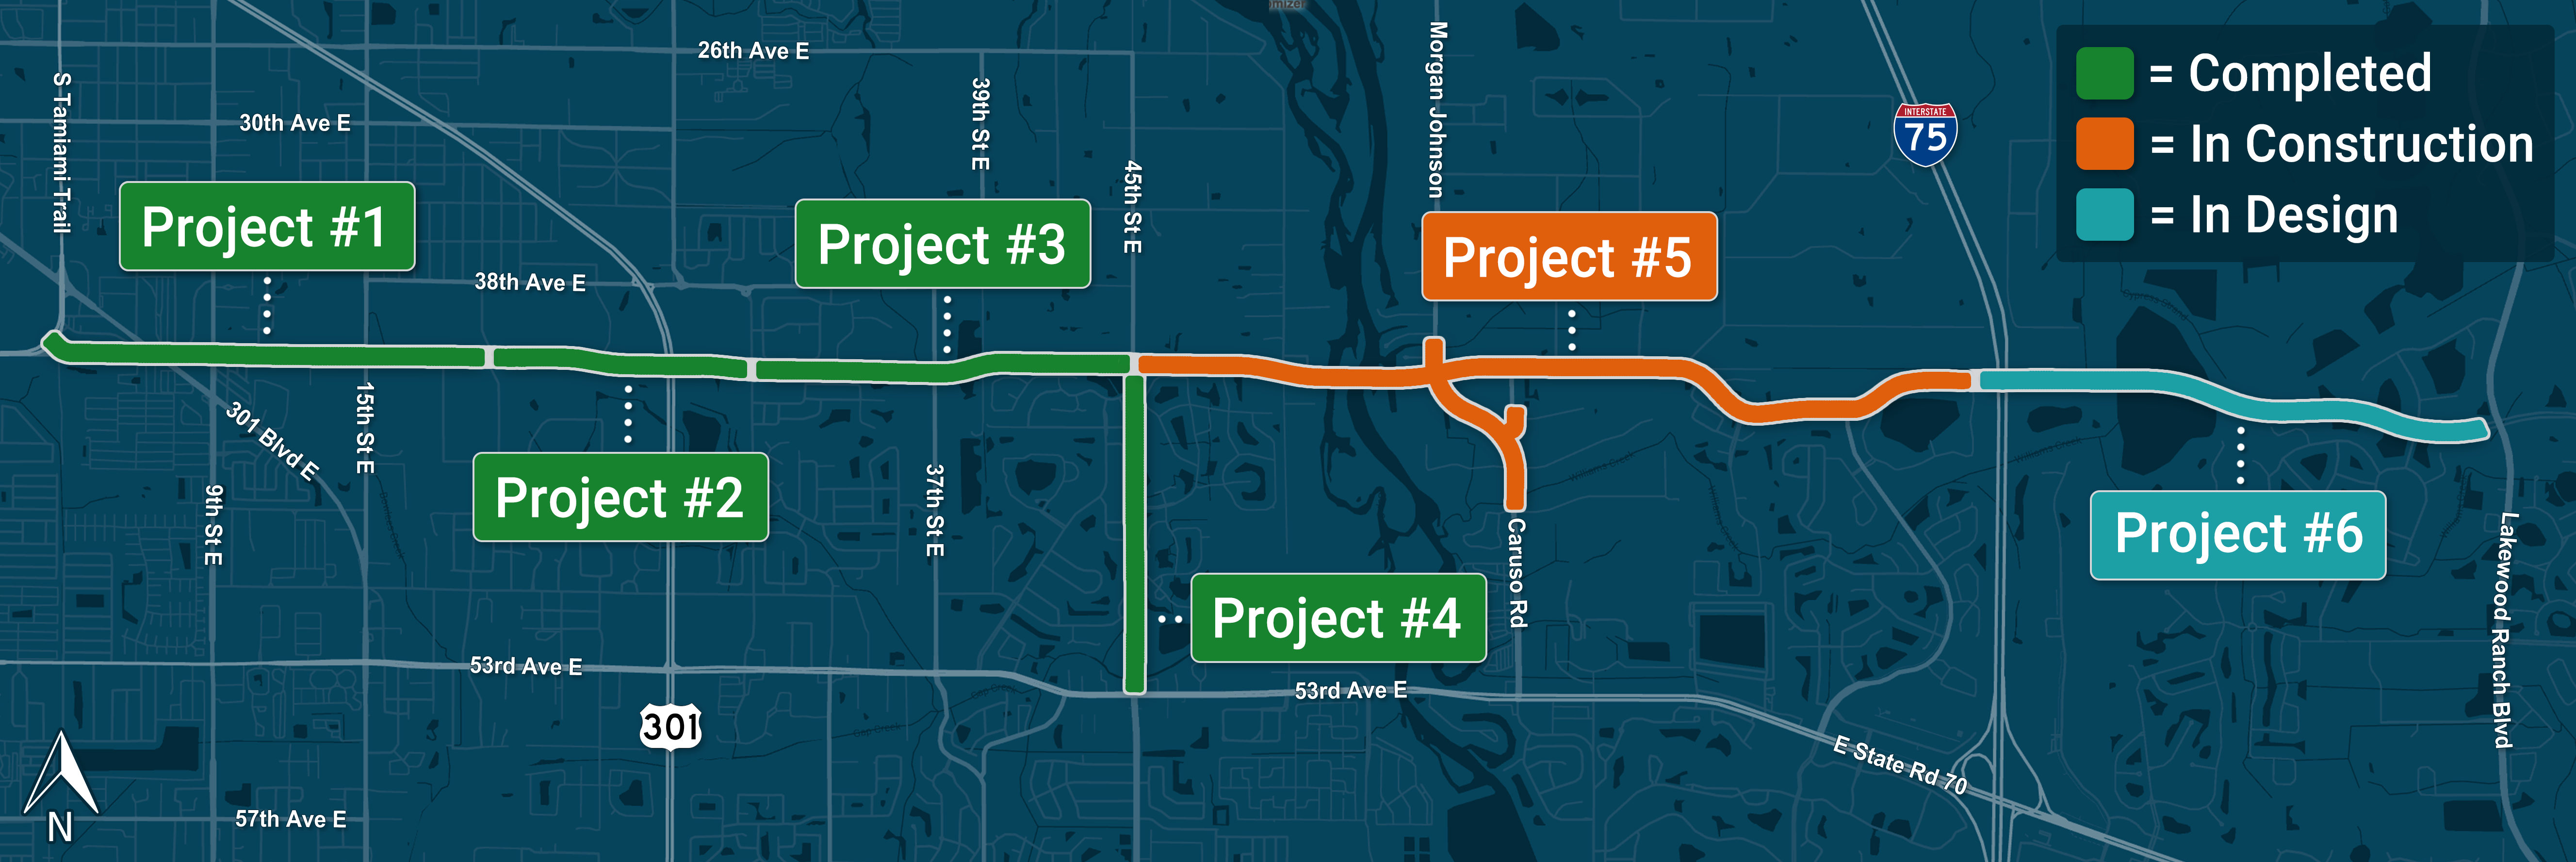 44th Ave East Extension Projects Overview Map